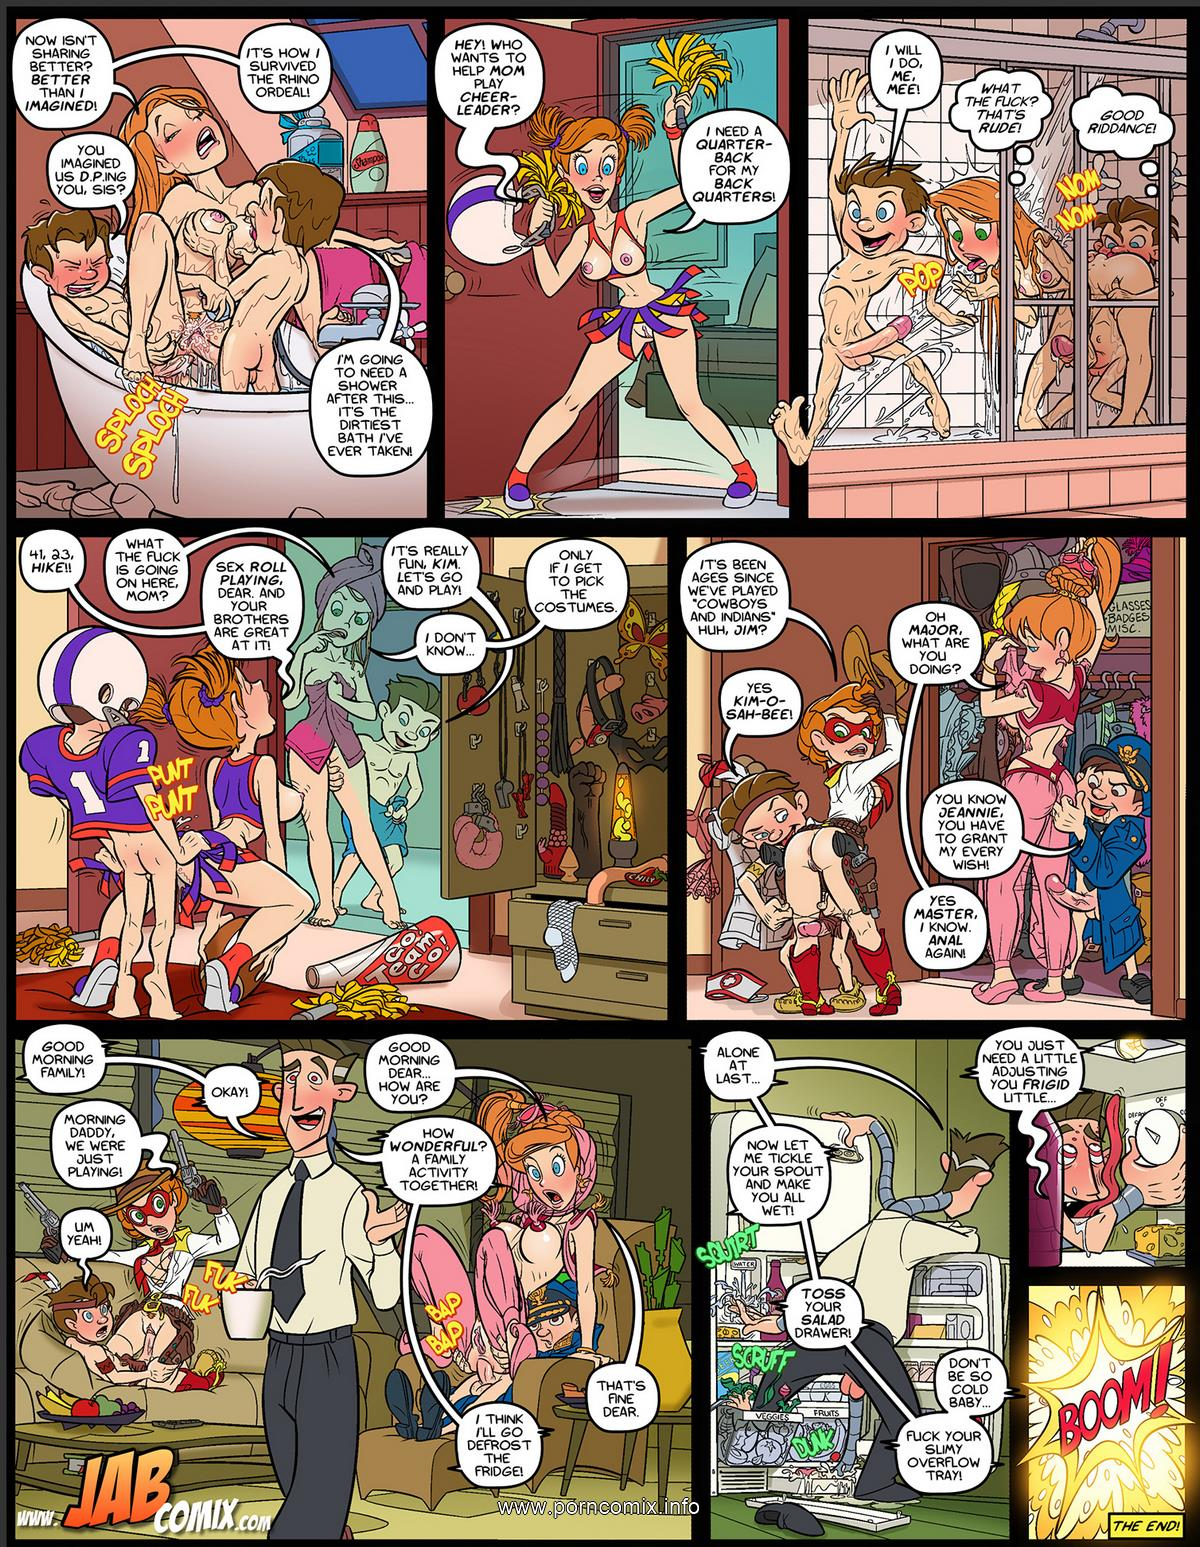 Jabcomix-Fucking Possible 2 - part 2